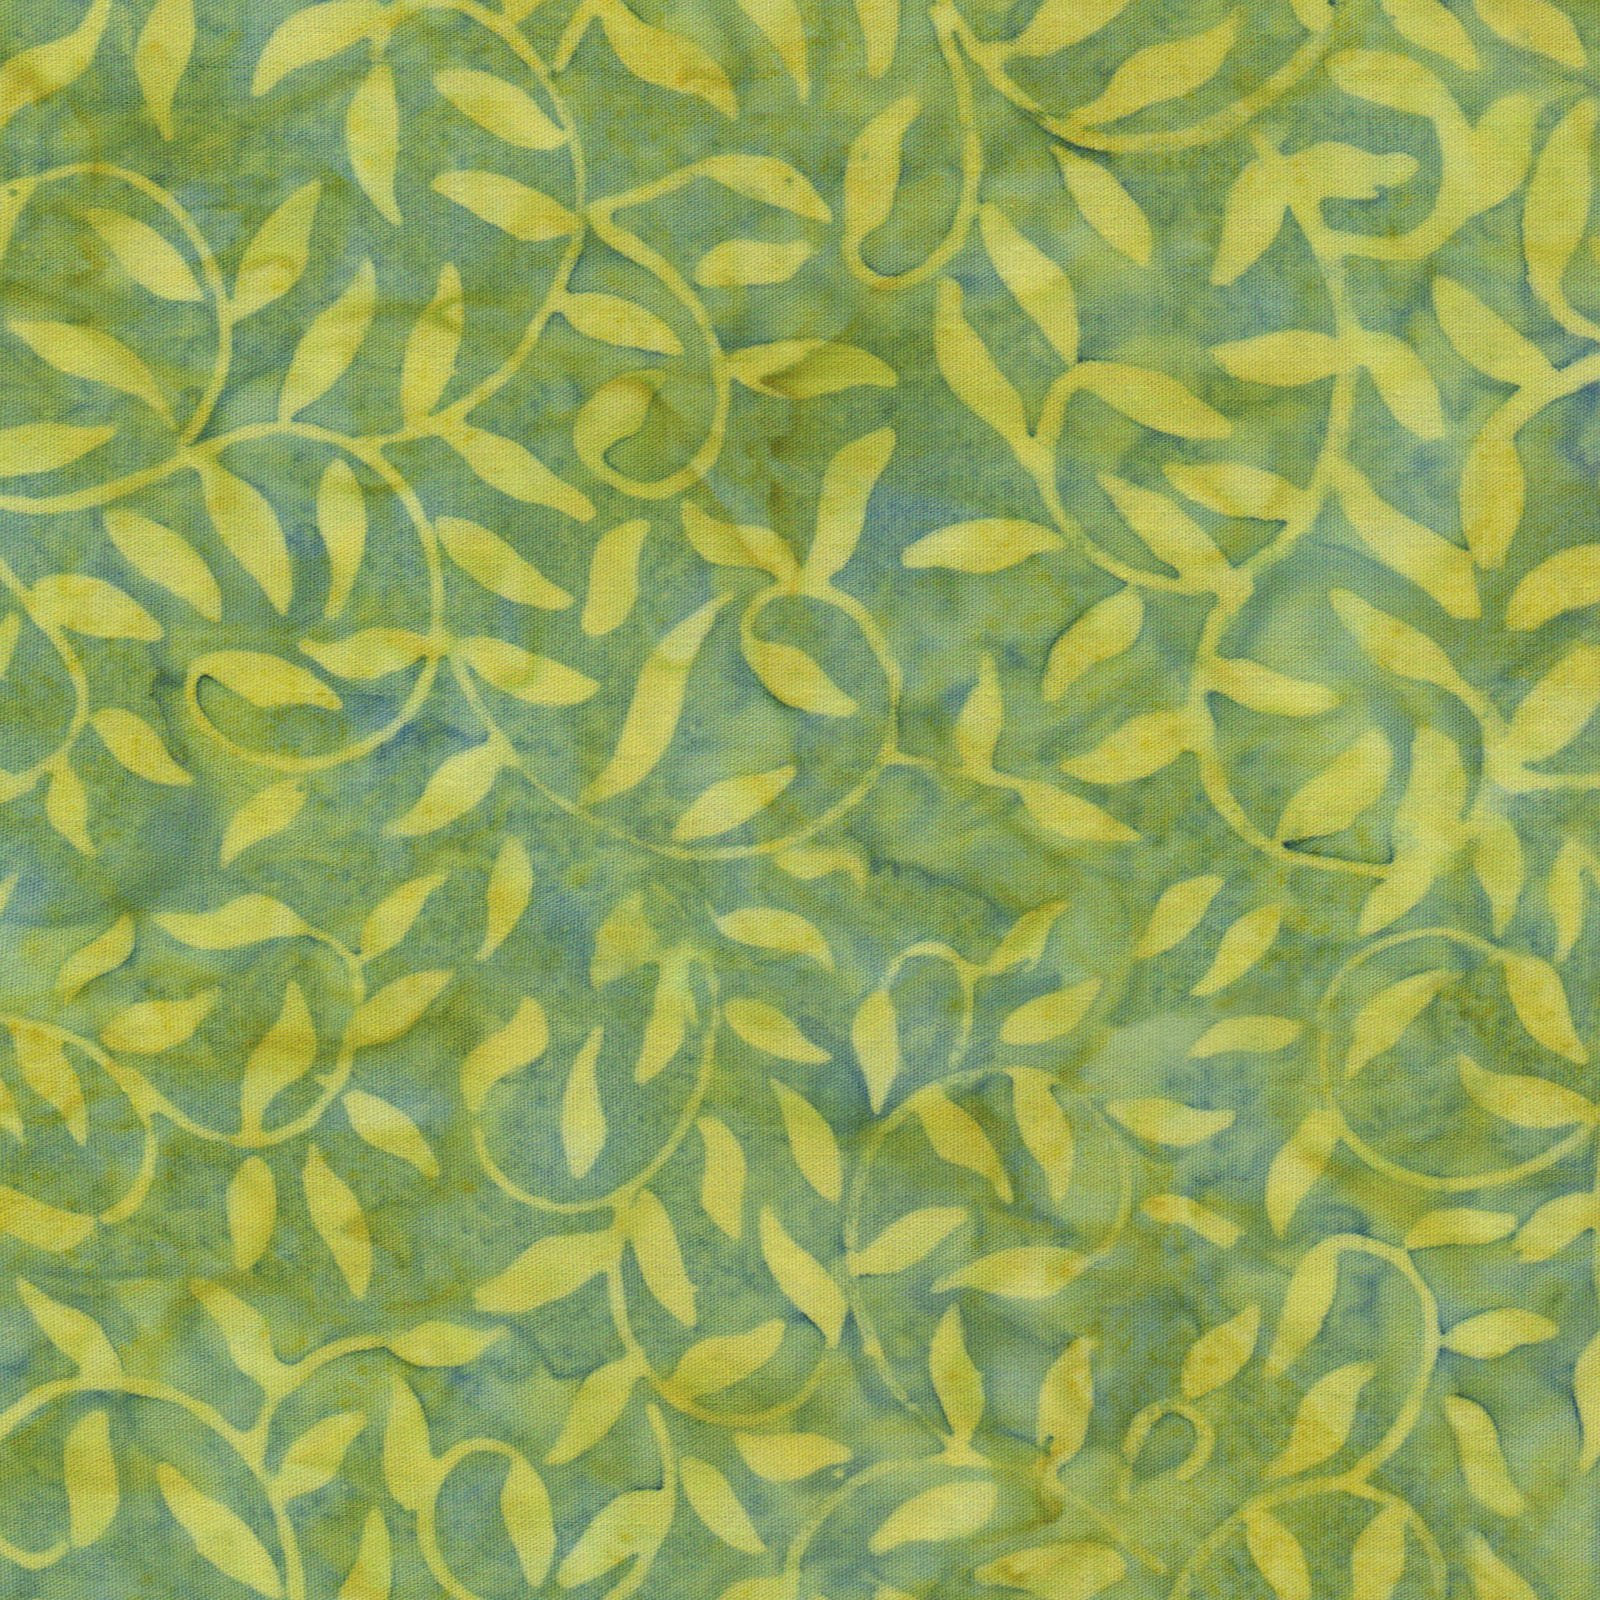 EESC-B51 G - COLOR THERAPY BATIKS BY MAYWOOD STUDIO SCROLL-VINE GREEN - ARRIVING DECEMBER 2020